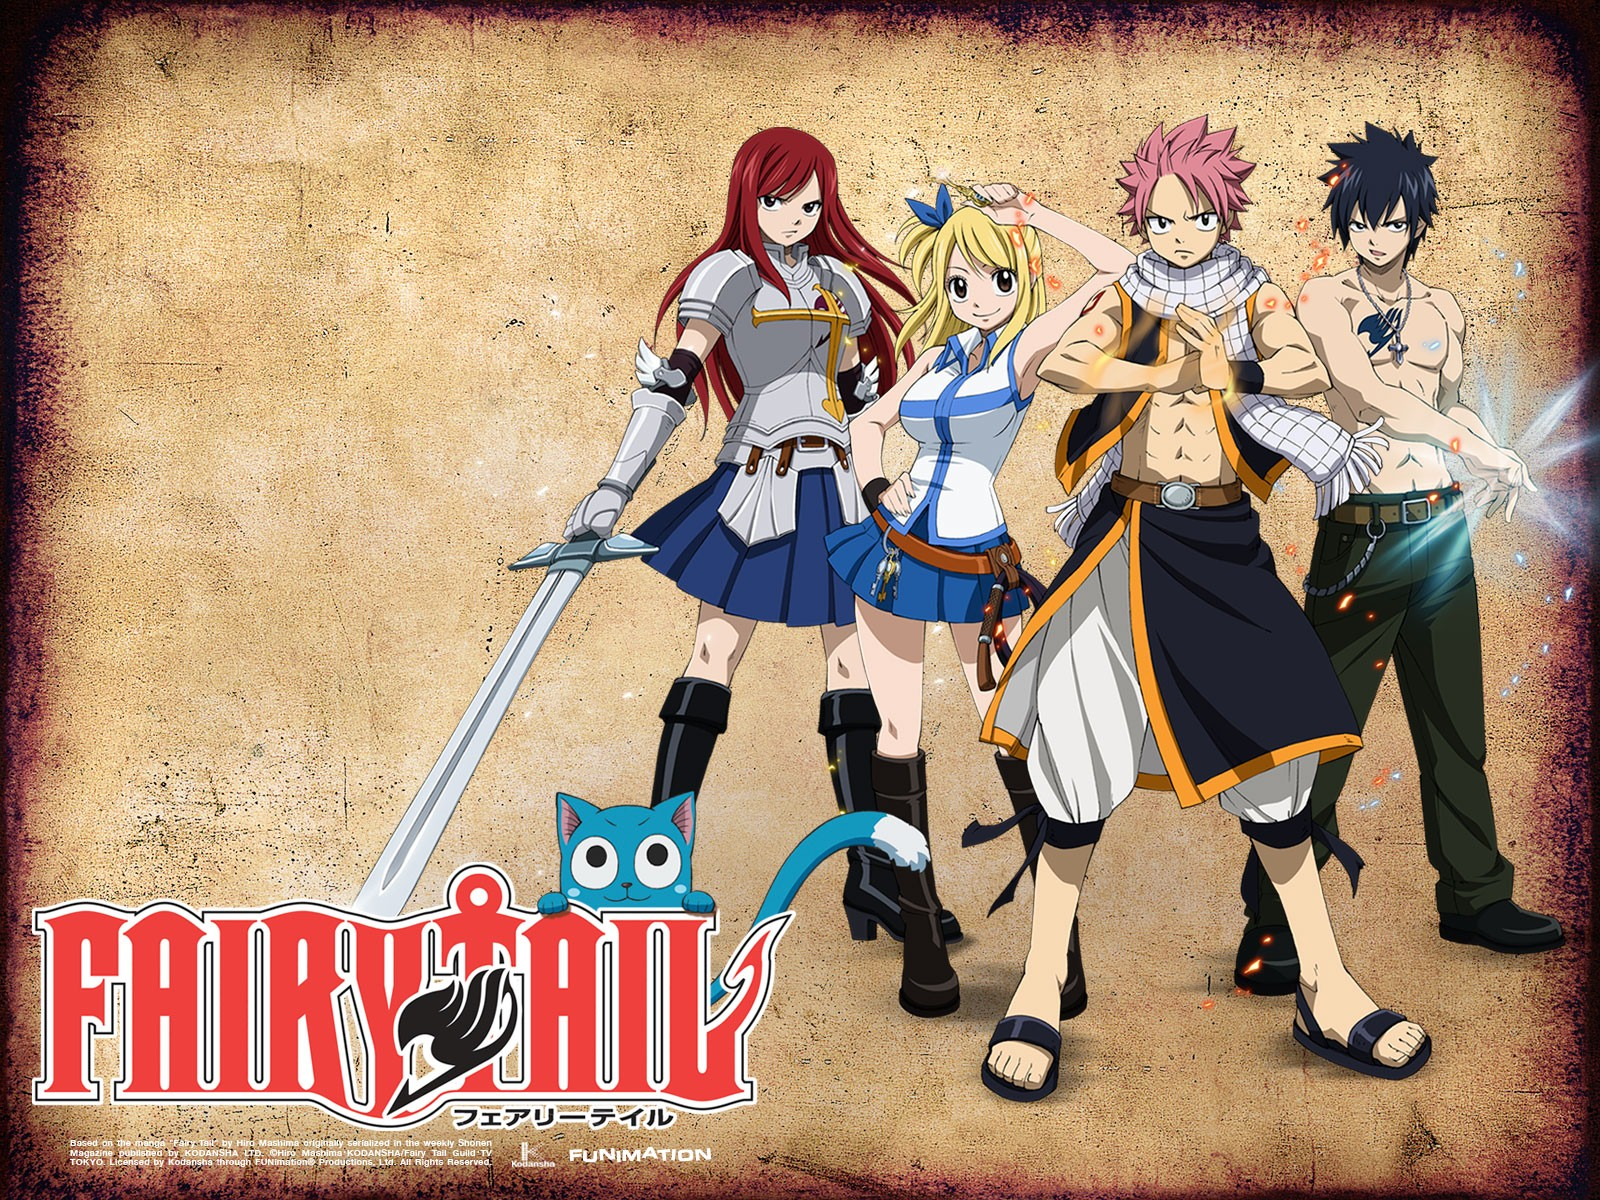 Fairy Tail Wallpapers - Fairy Tail Wallpaper (35304365) - Fanpop